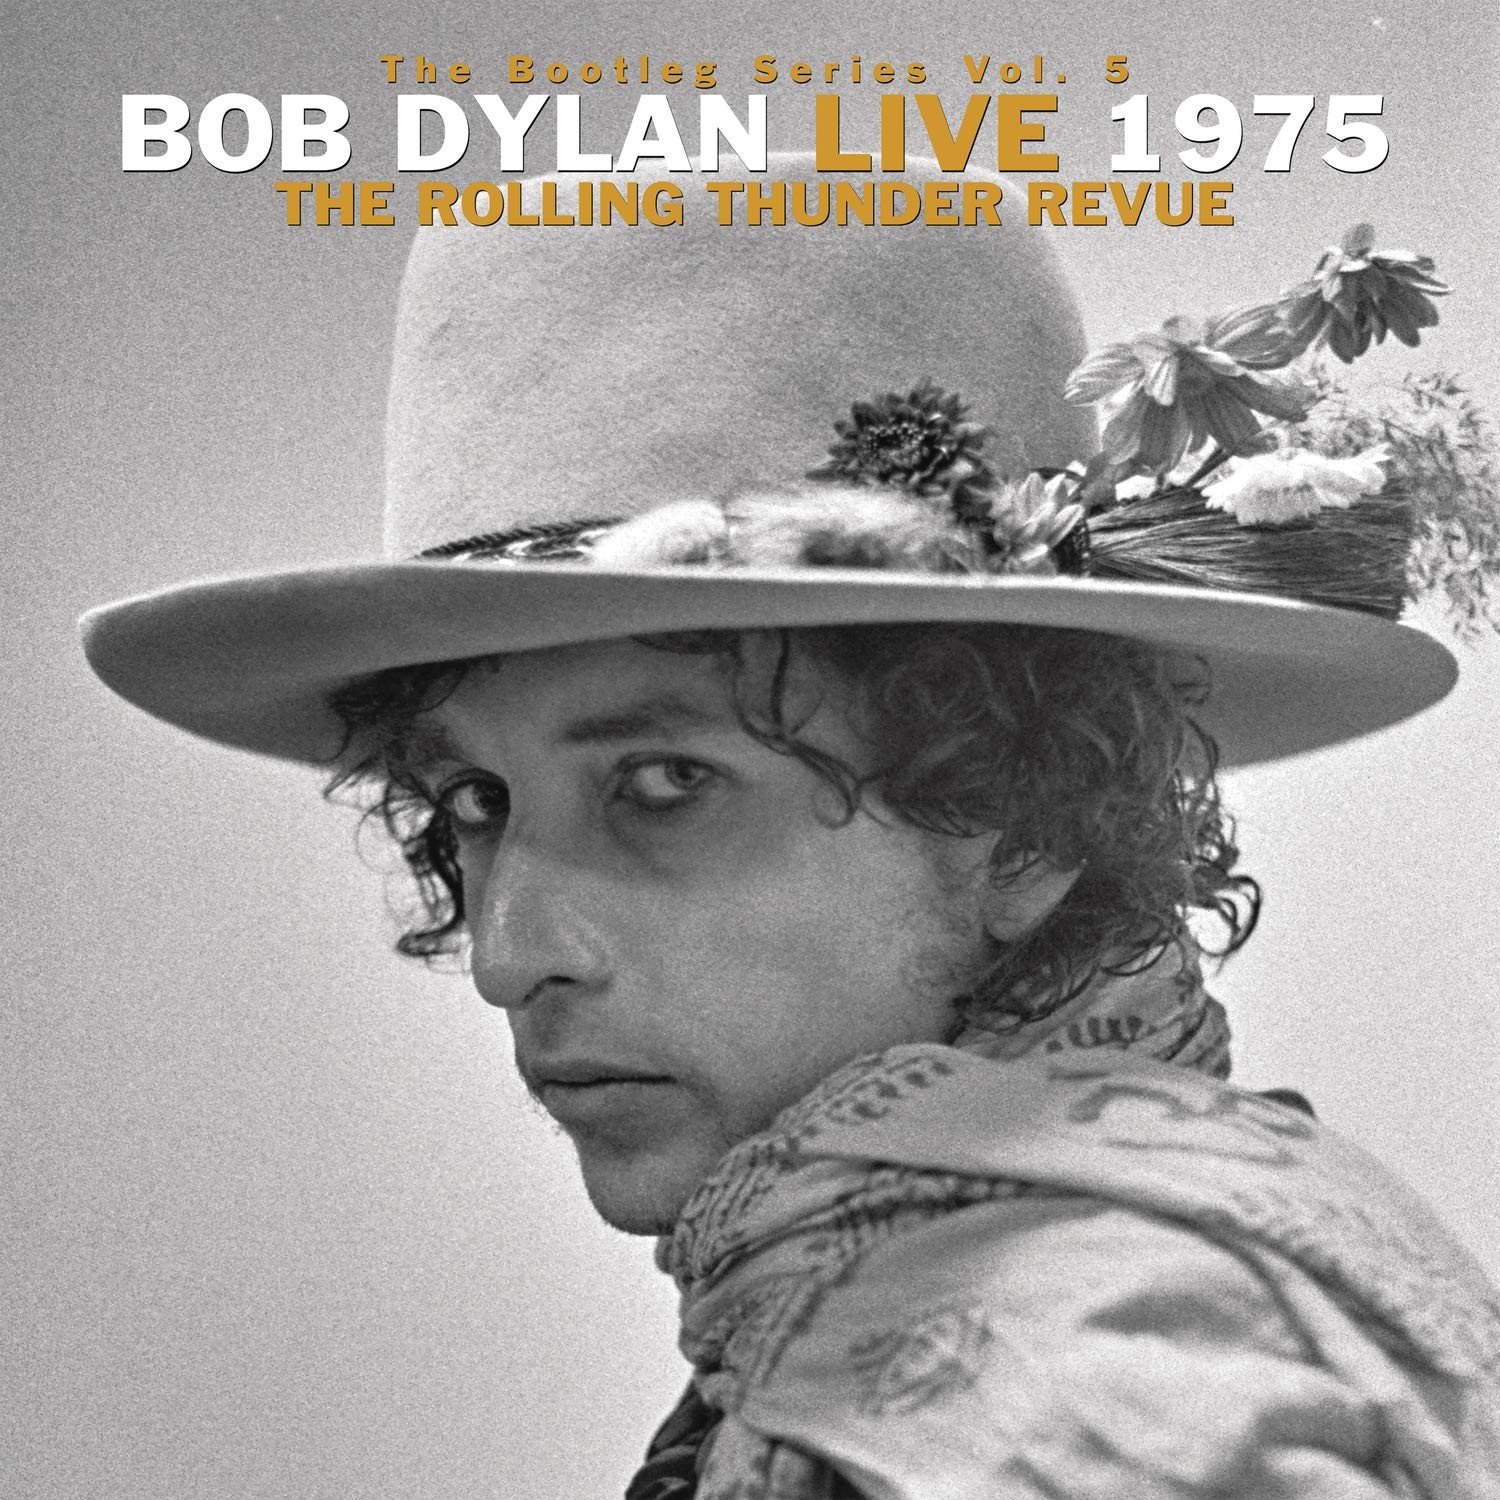 Bob Dylan - The Bootleg Series Vol. 5: Bob Dylan Live 1975, The Rolling Thunder Revue 3XLP